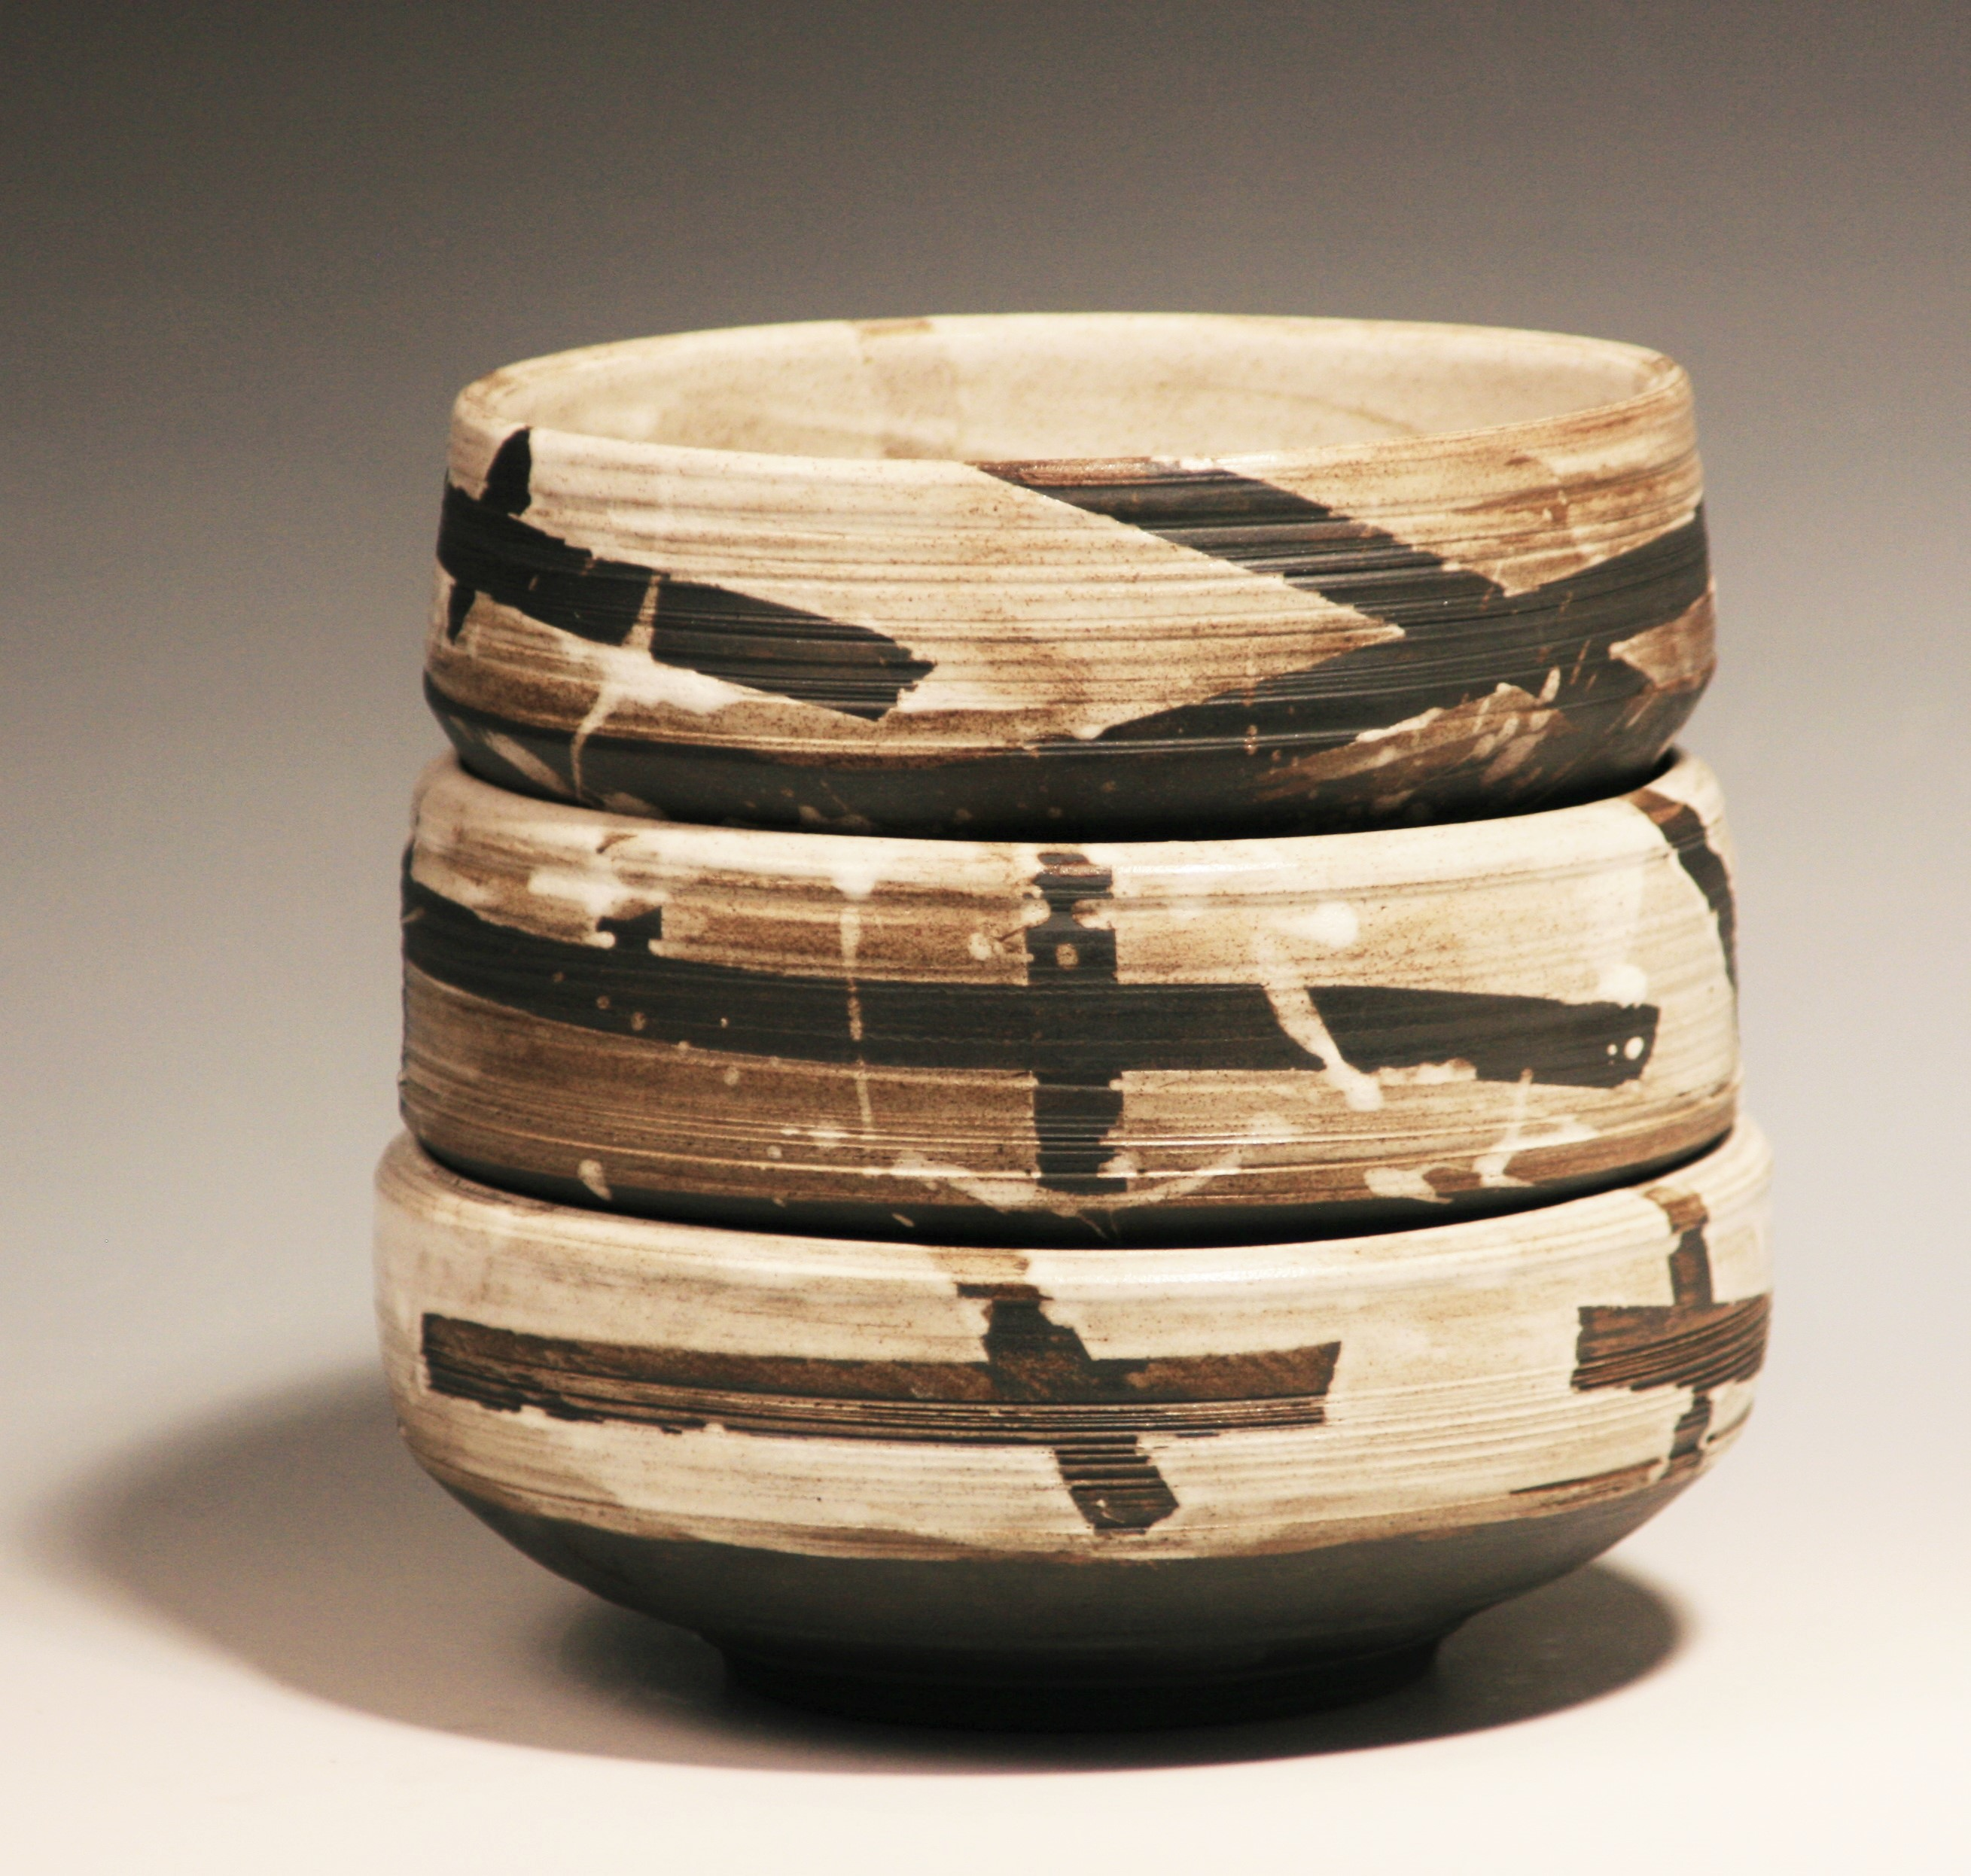 Baked Clay Studio_Cameron Petke _B+W stacking bowls set